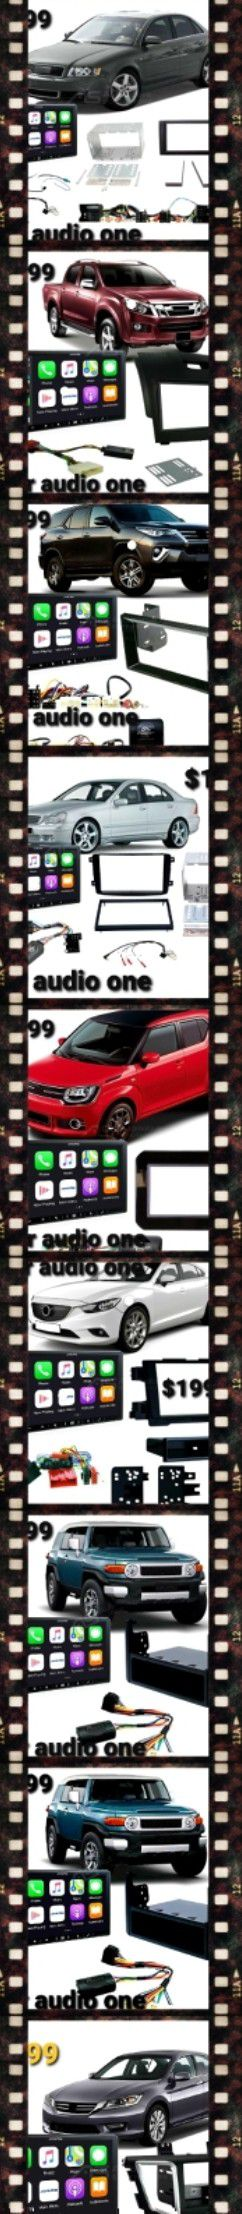 Double din touchscreen Bluetooth usb Apple CarPlay android auto Led light for Sale in San Diego, CA